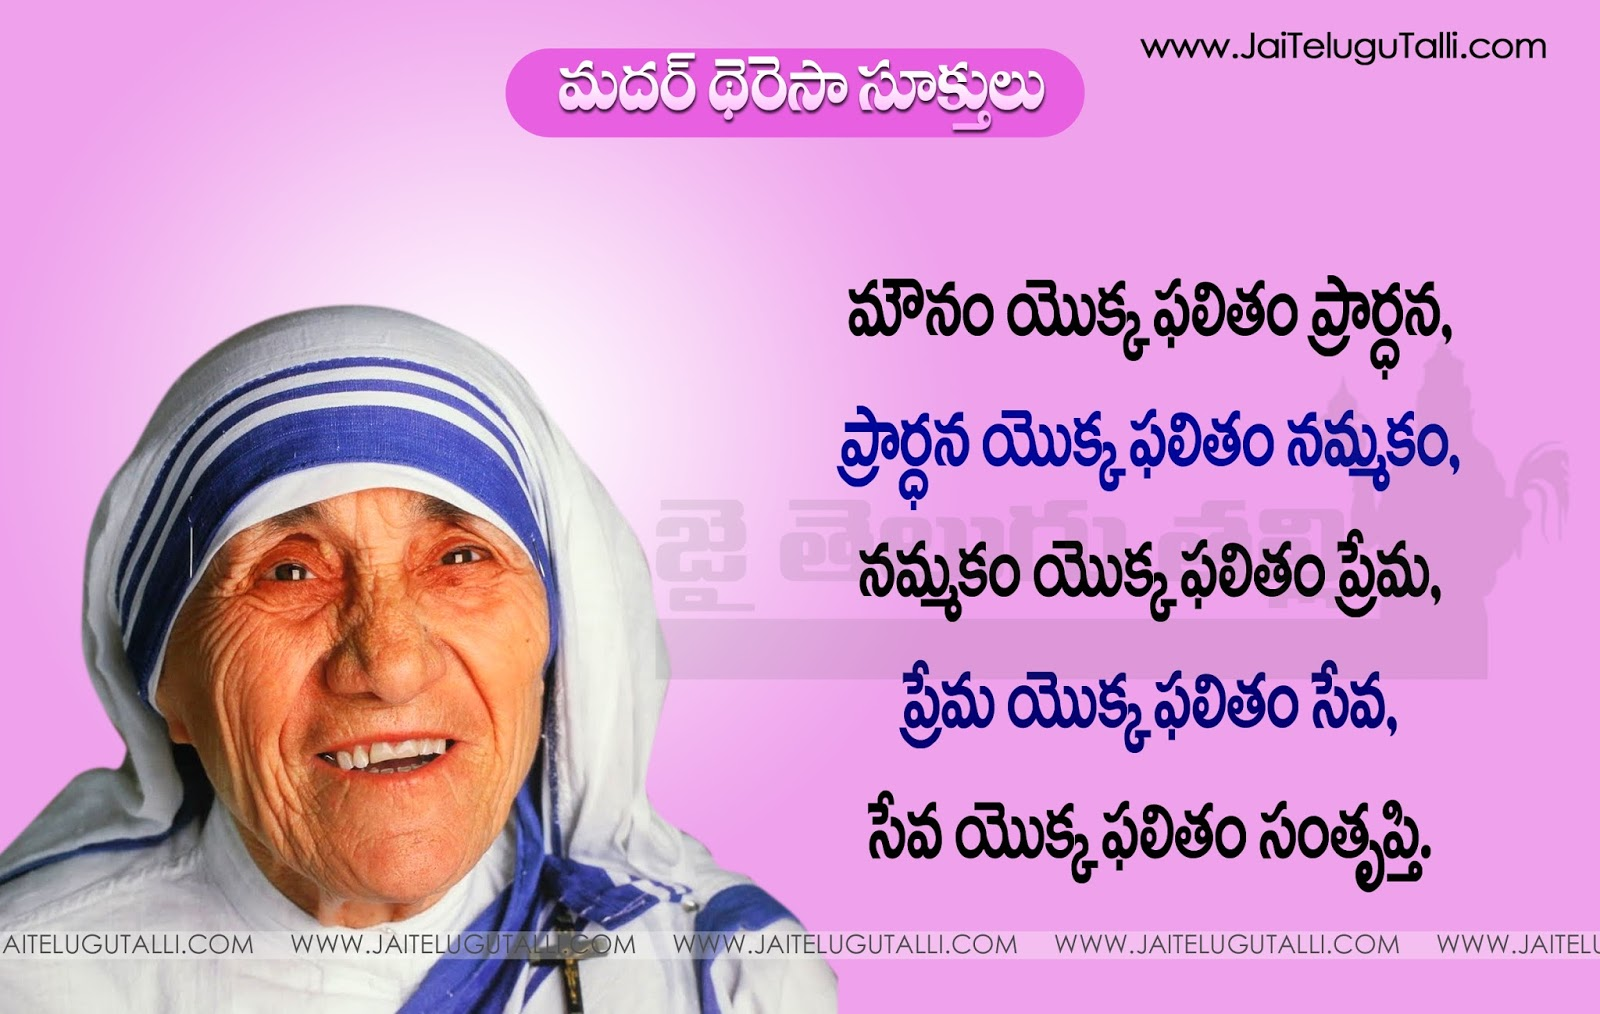 Life Quotes Mother Teresa Beautiful Telugu Quotes And Life Inspirational Thoughtsmother